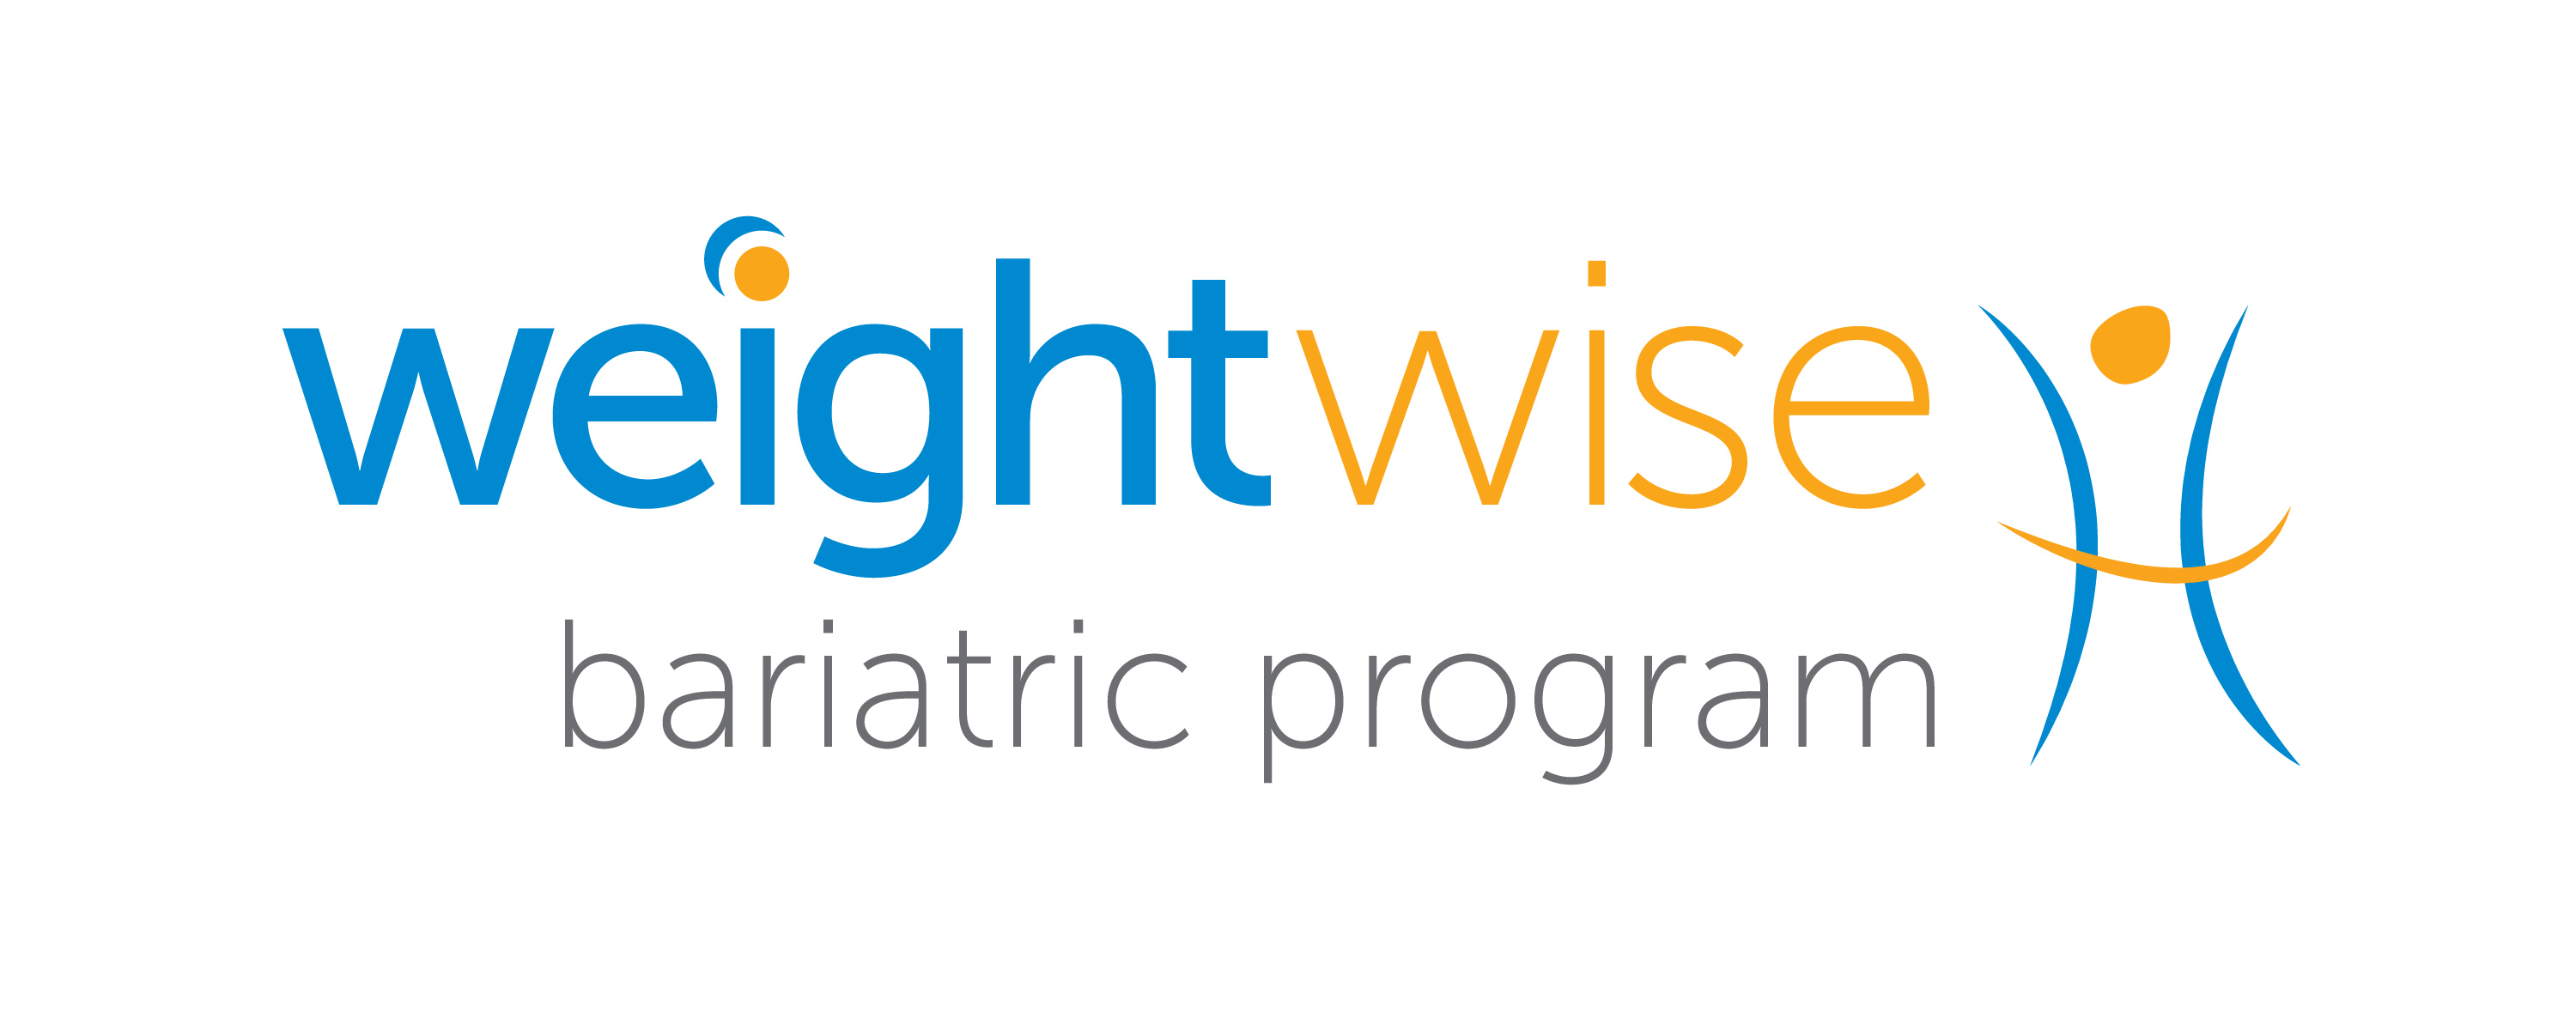 Weightwise Bariatric (Transforming Lives)